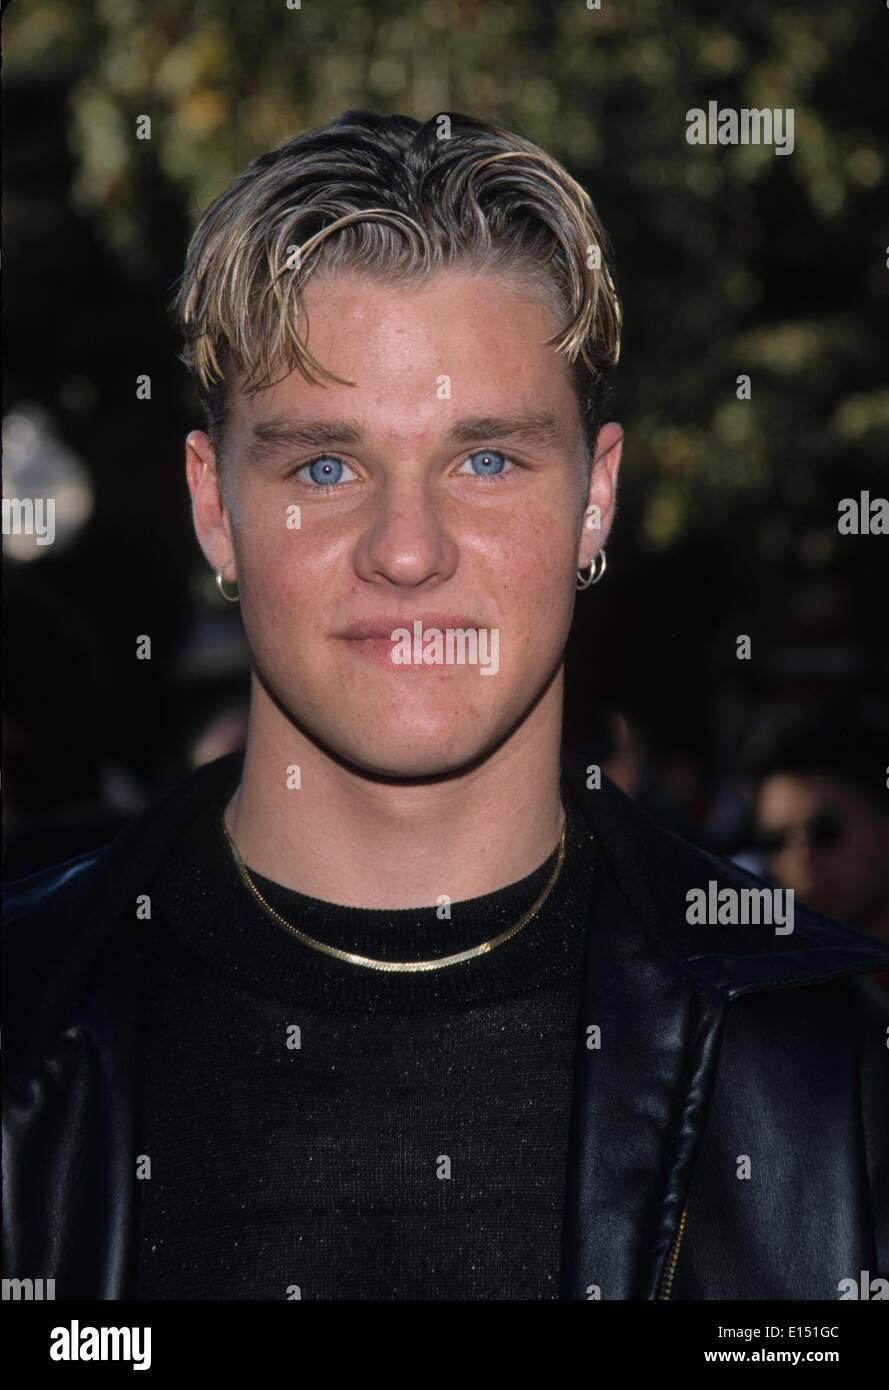 zachery ty bryan fox newszachery ty bryan 2019, zachery ty bryan now, zachery ty bryan wife, zachery ty bryan age, zachery ty bryan family, zachery ty bryan home improvement, zachery ty bryan net worth, zachery ty bryan movies, zachery ty bryan height, zachery ty bryan vikings, zachery ty bryan young, zachery ty bryan soccer, zachery ty bryan thor, zachery ty bryan fox news, zachery ty bryan bitcoin, zachery ty bryan instagram, zachery ty bryan 2018, zachery ty bryan worth, zachery ty bryan conservative, zachery ty bryan twitter